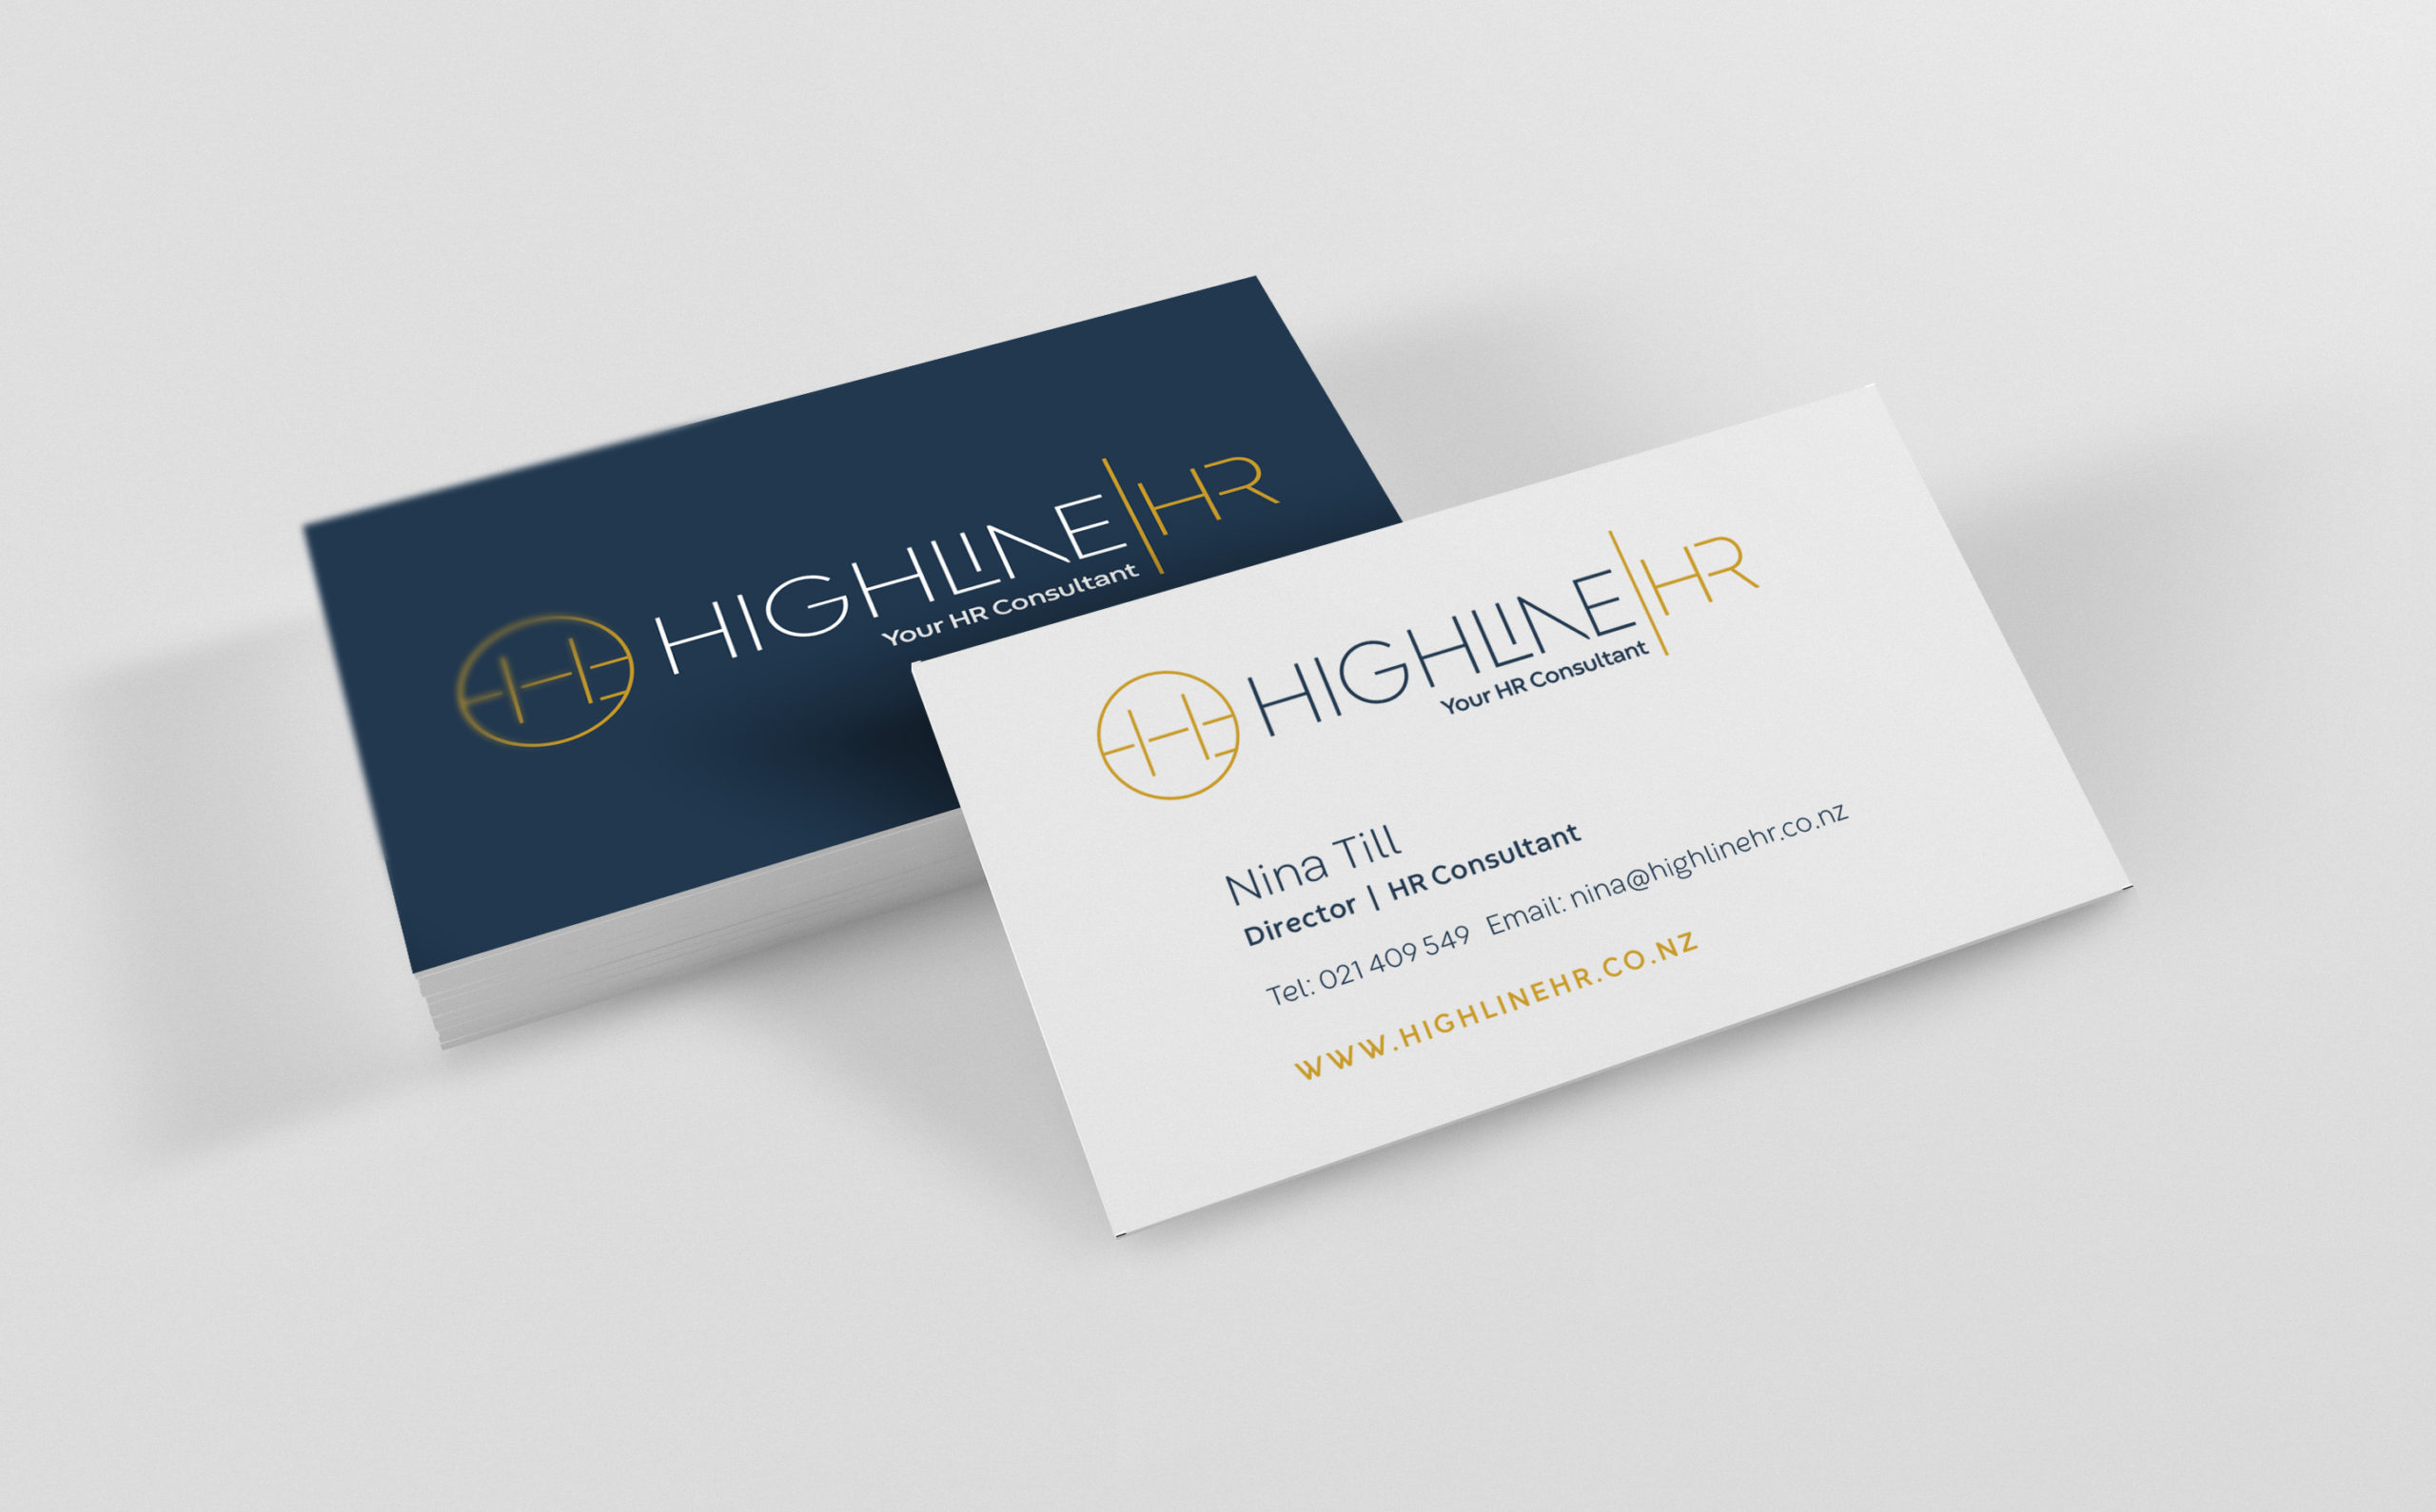 Highline HR business card design Nina Till